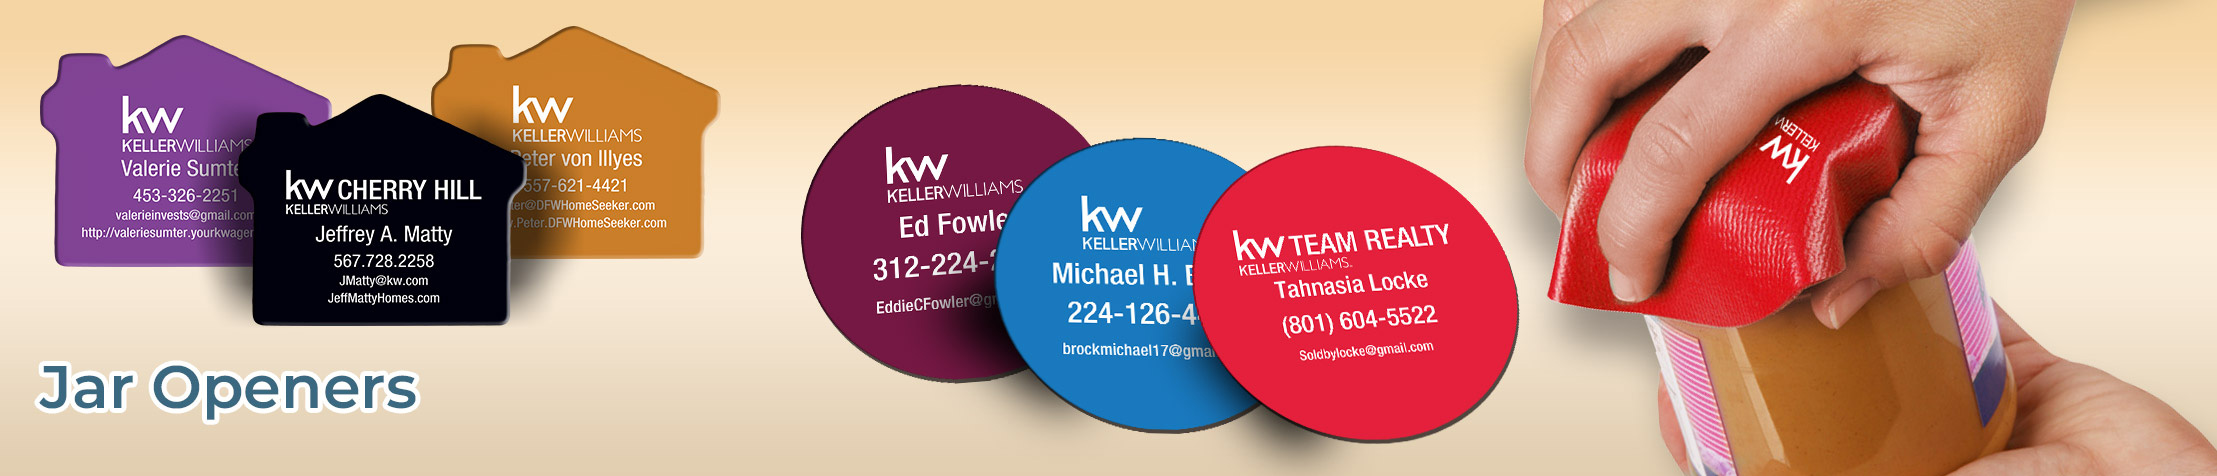 Keller Williams Real Estate Jar Openers - KW approved vendor personalized realtor promotional products | BestPrintBuy.com